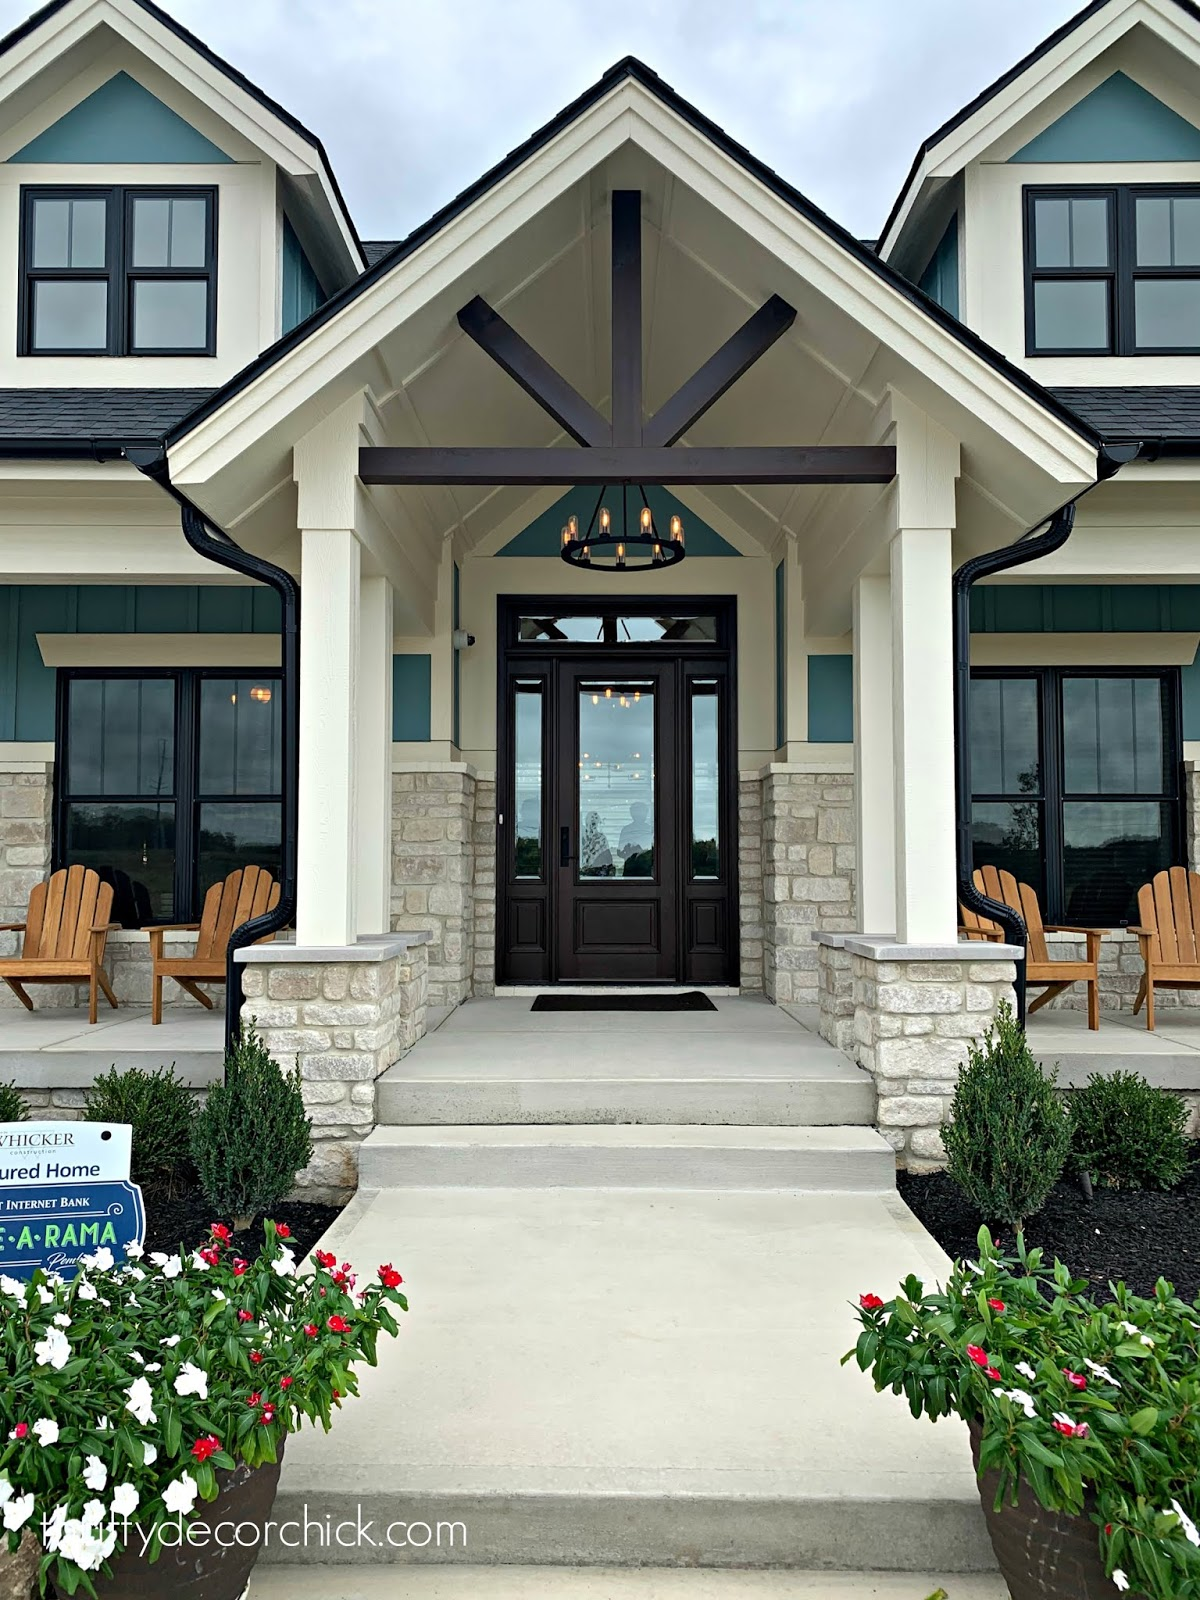 Craftsman arched front exterior with double porches